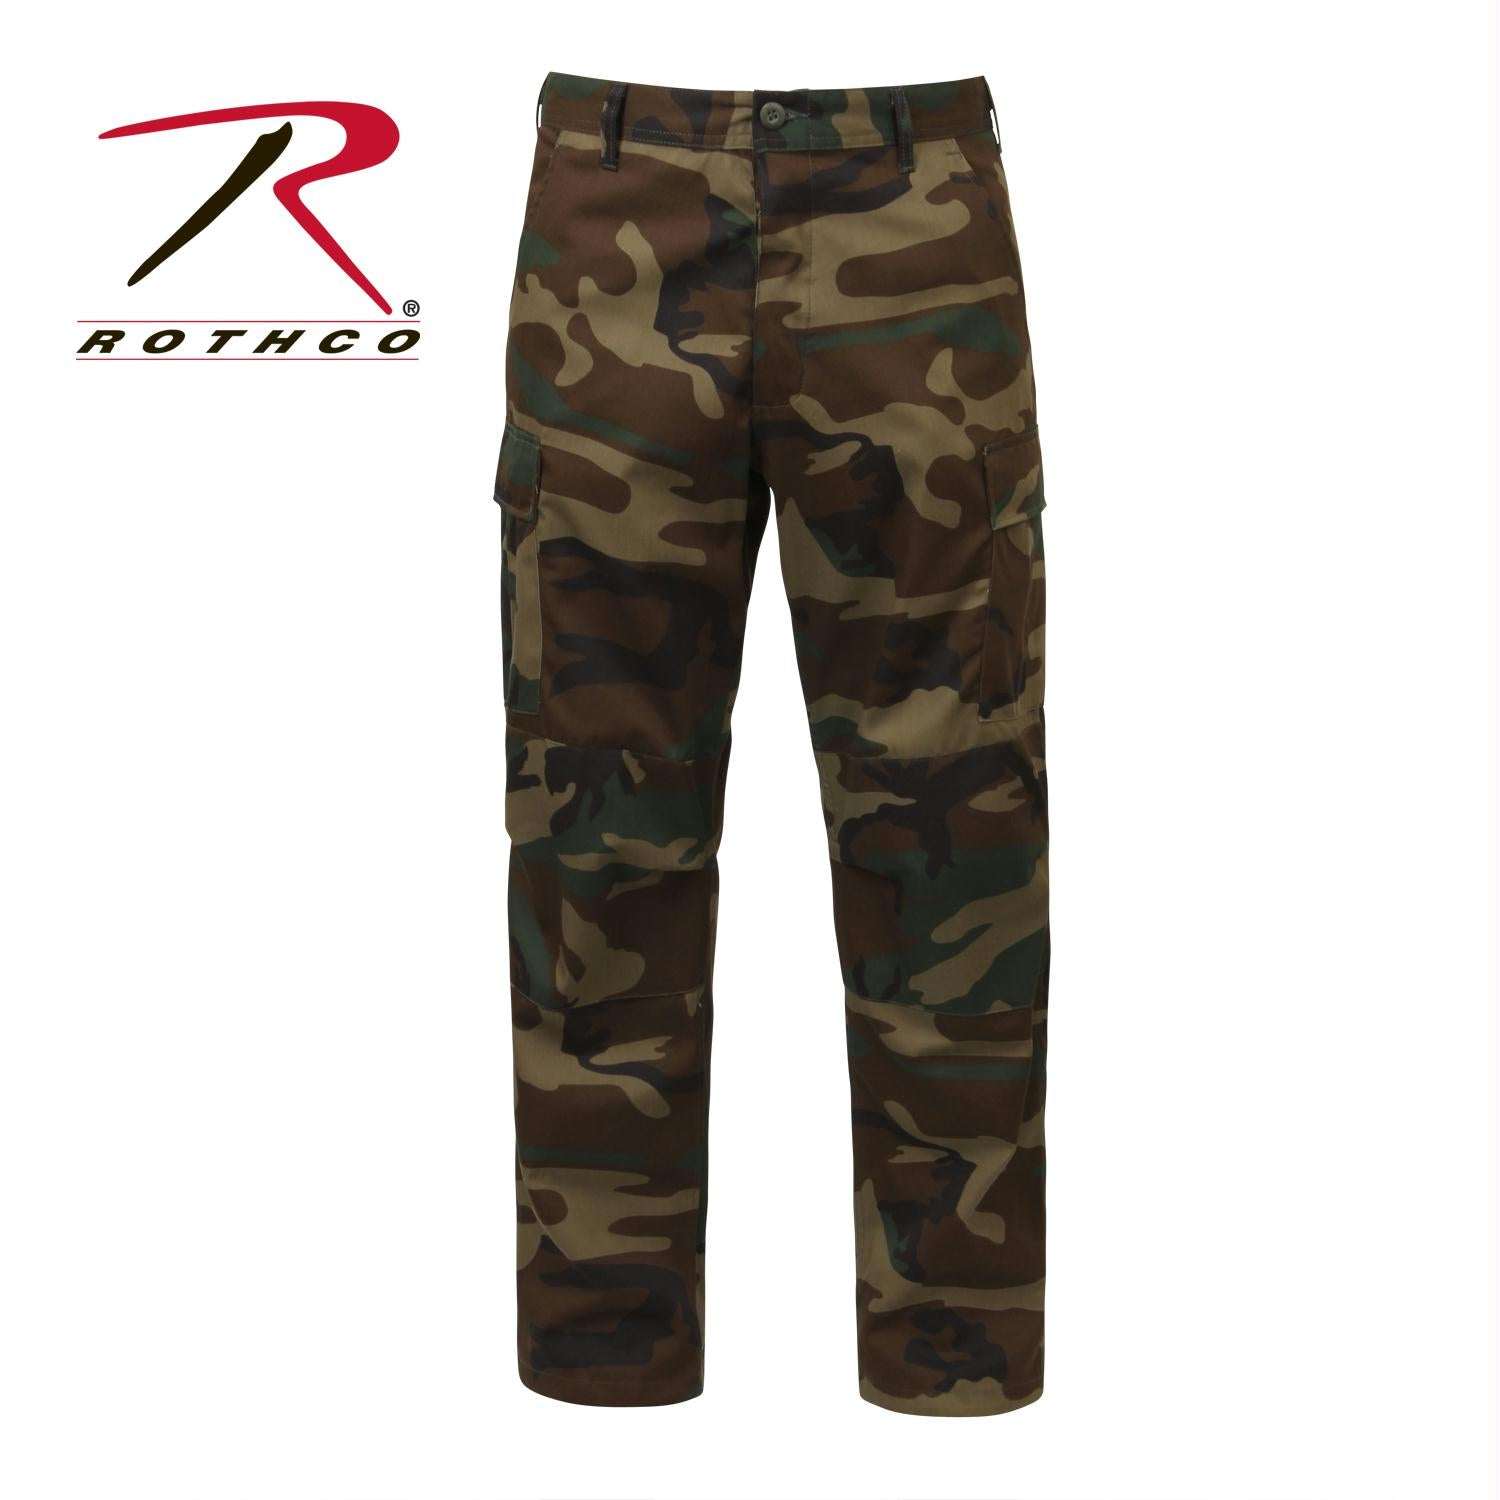 Rothco Camo Tactical BDU Pants - Woodland Camo / 2XL - Long